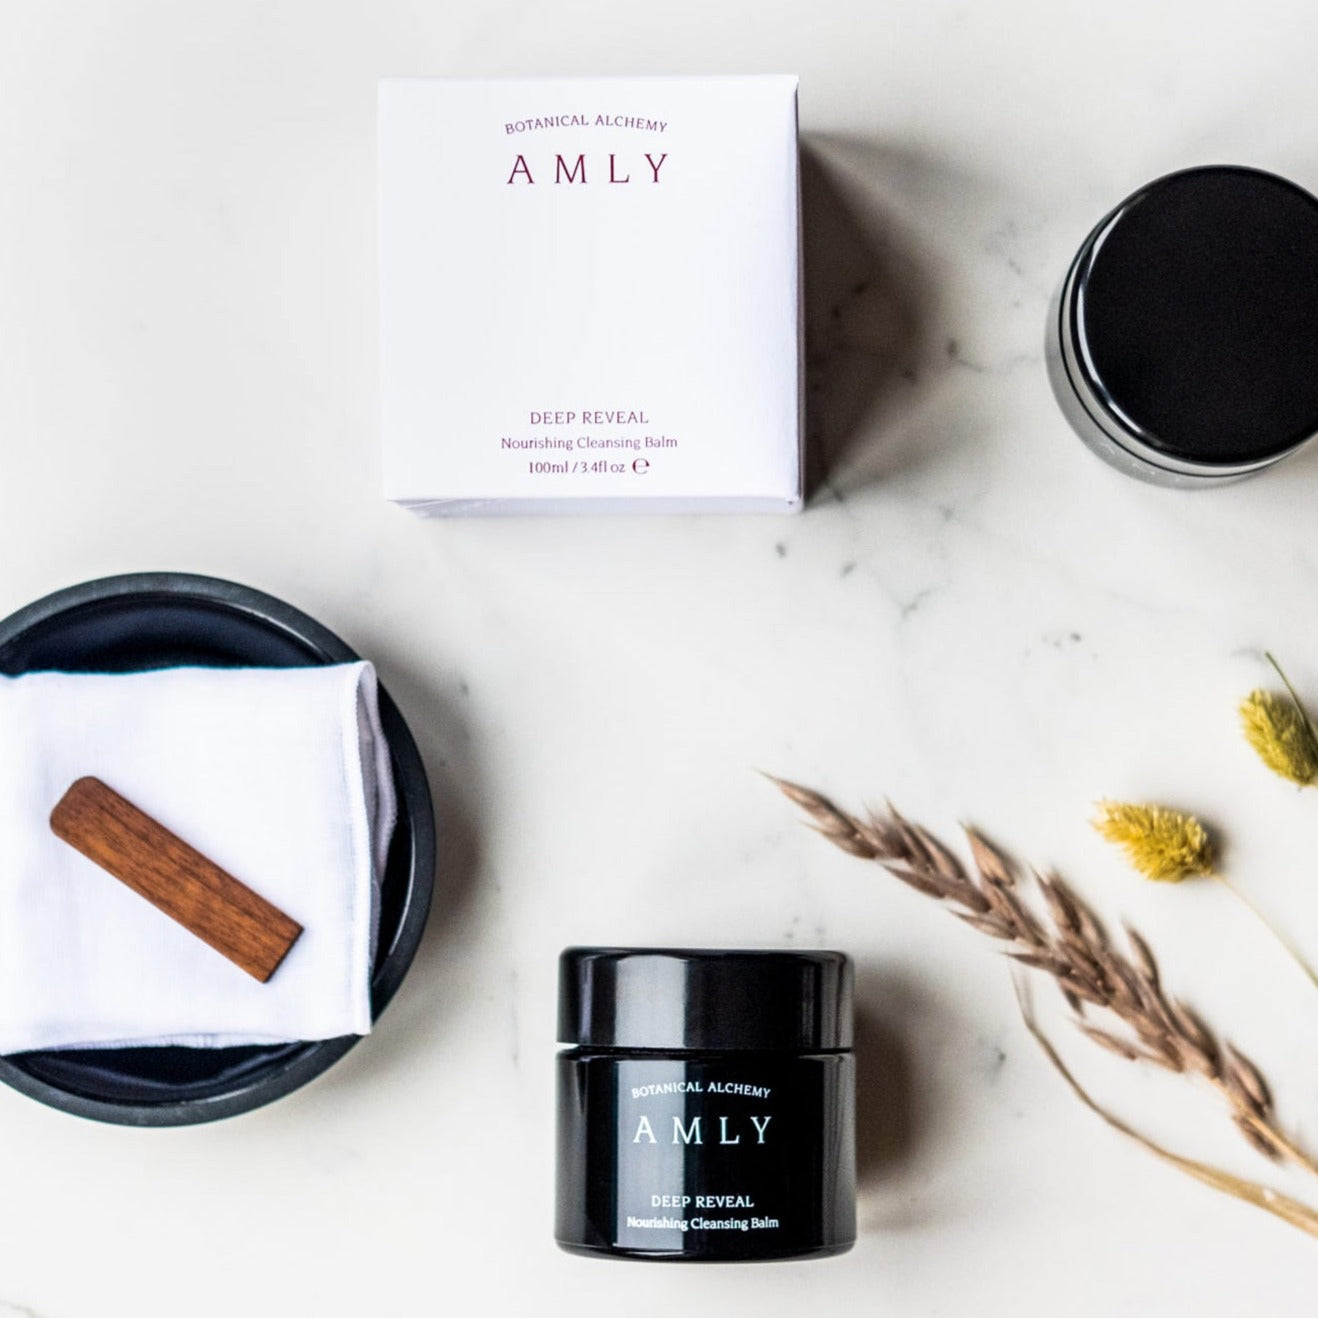 Amly Deep Reveal Nourishing Cleansing Balm & Mask